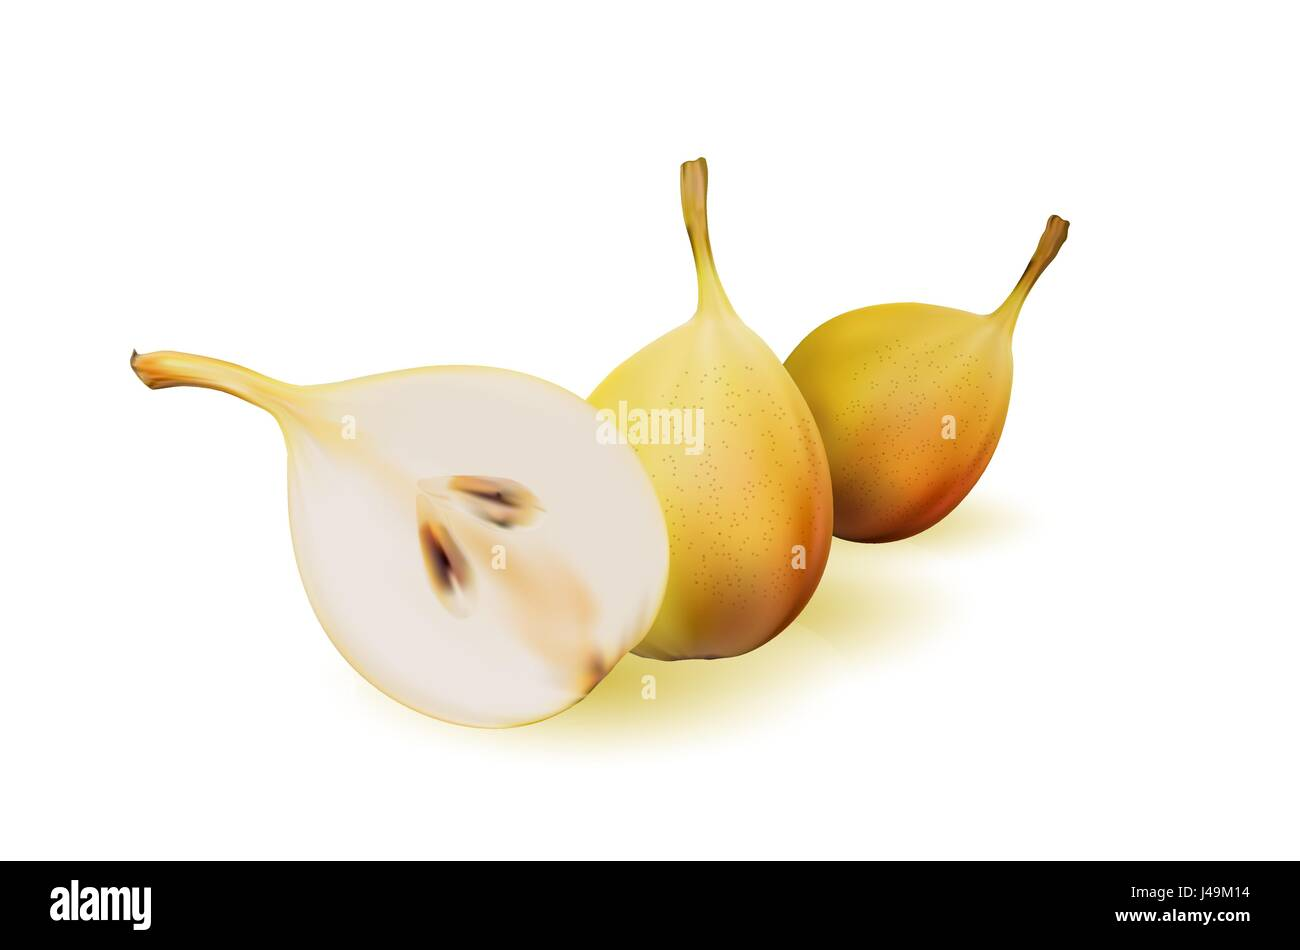 Yellow pear as source of vitamins and minerals to increase energy and combat fatigue and depression. Pear and a - Stock Image